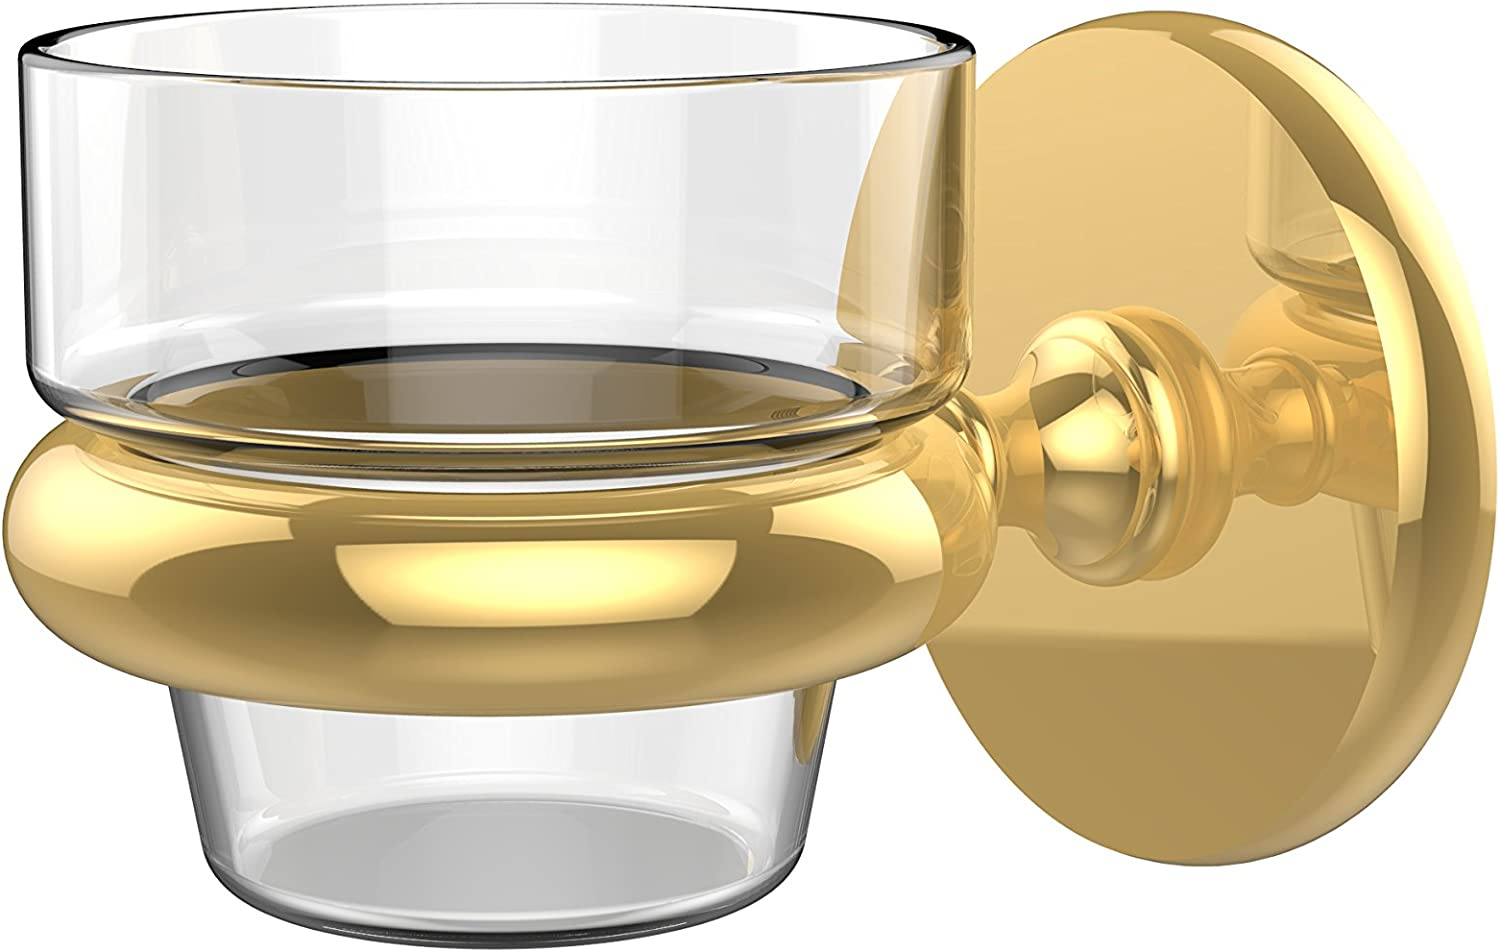 Allied Brass P1064-PB Wall Mounted Votive Candle Holder, Polished Brass